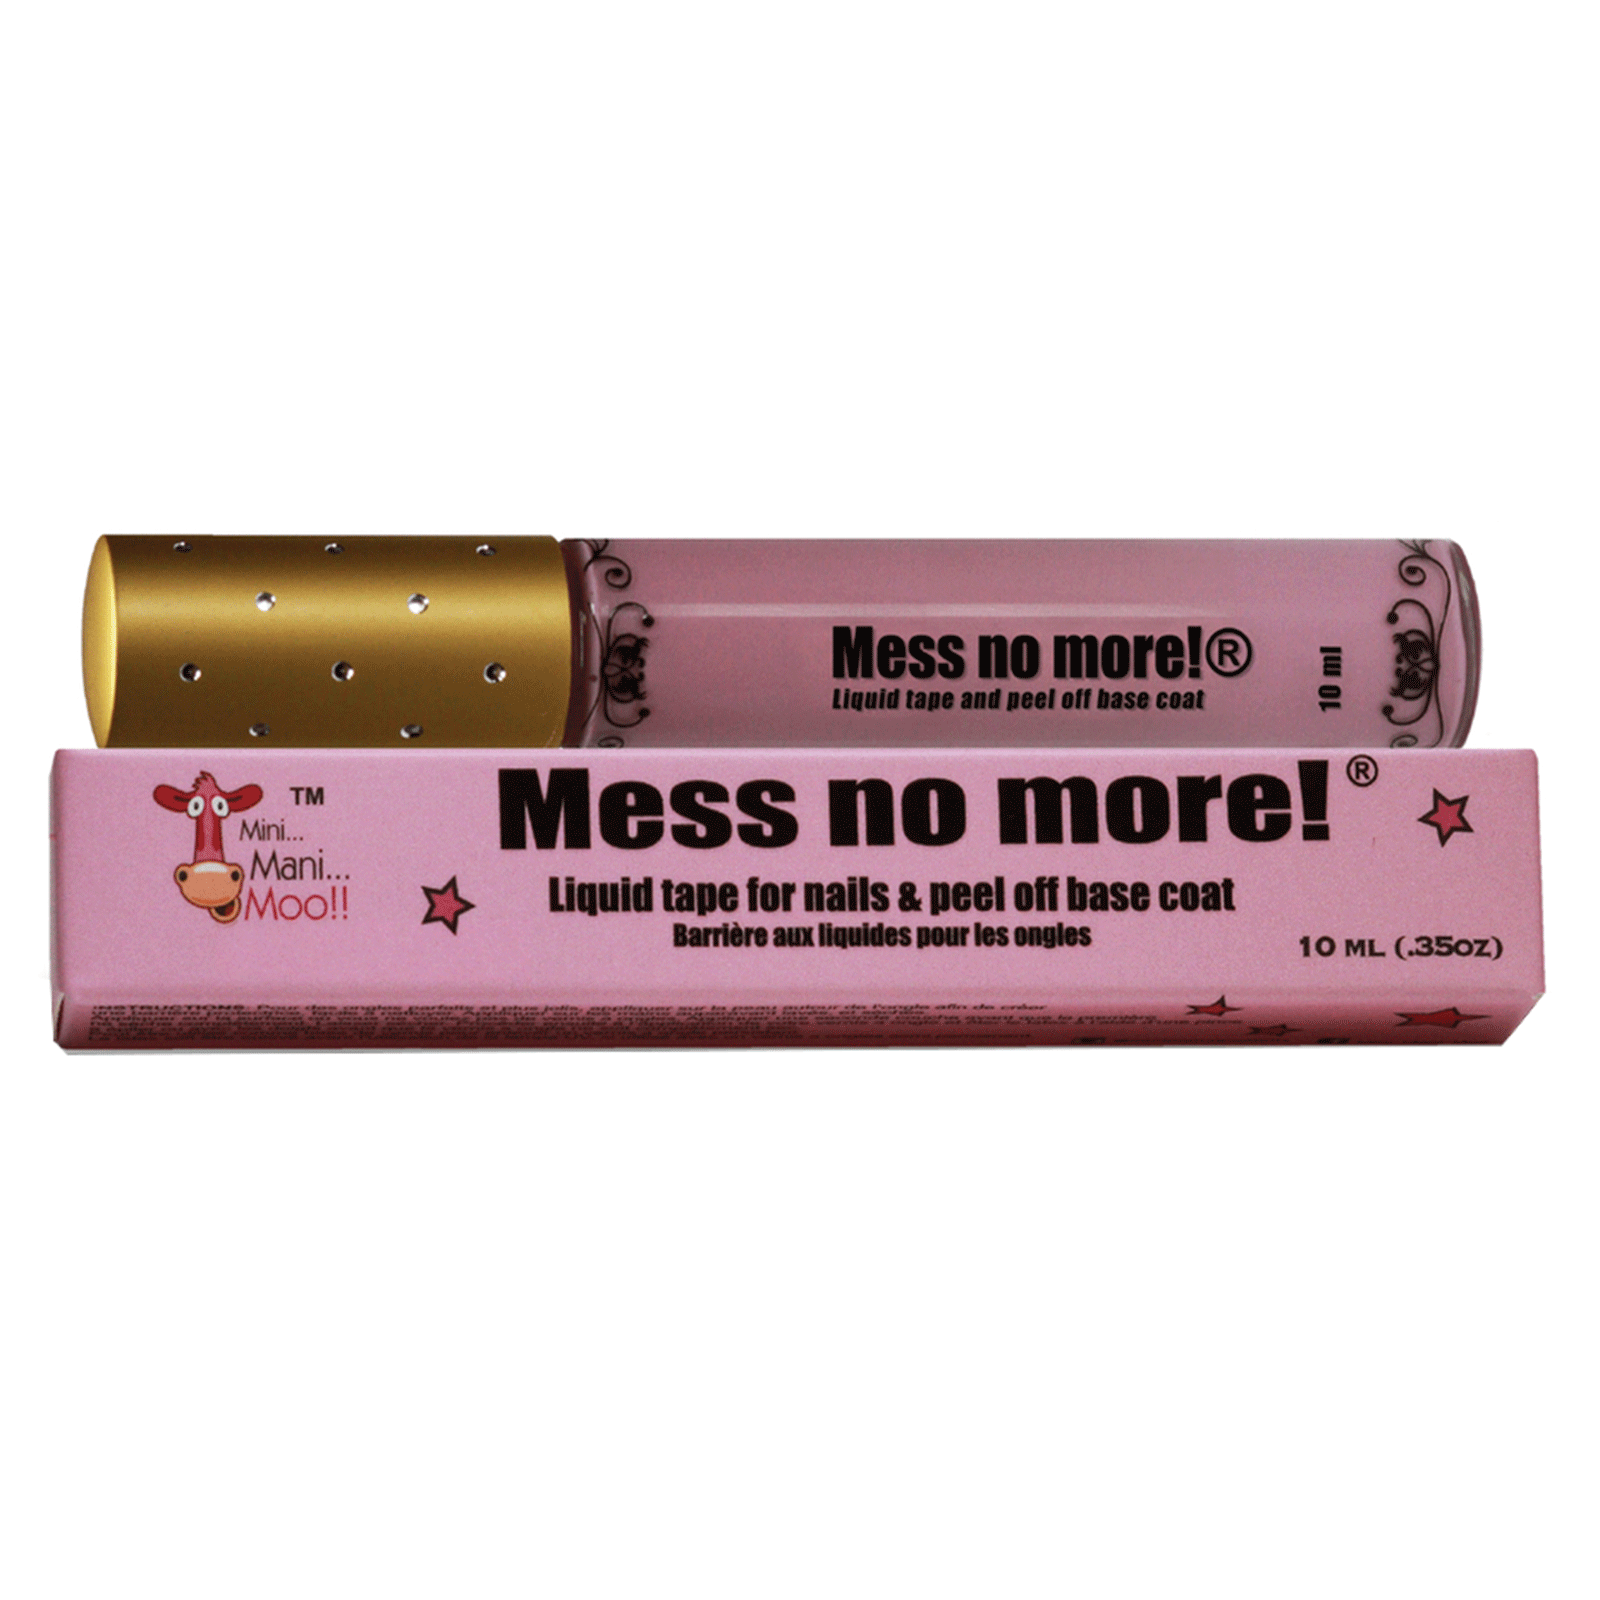 Mess No More® Liquid Tape - Mini Mani Moo